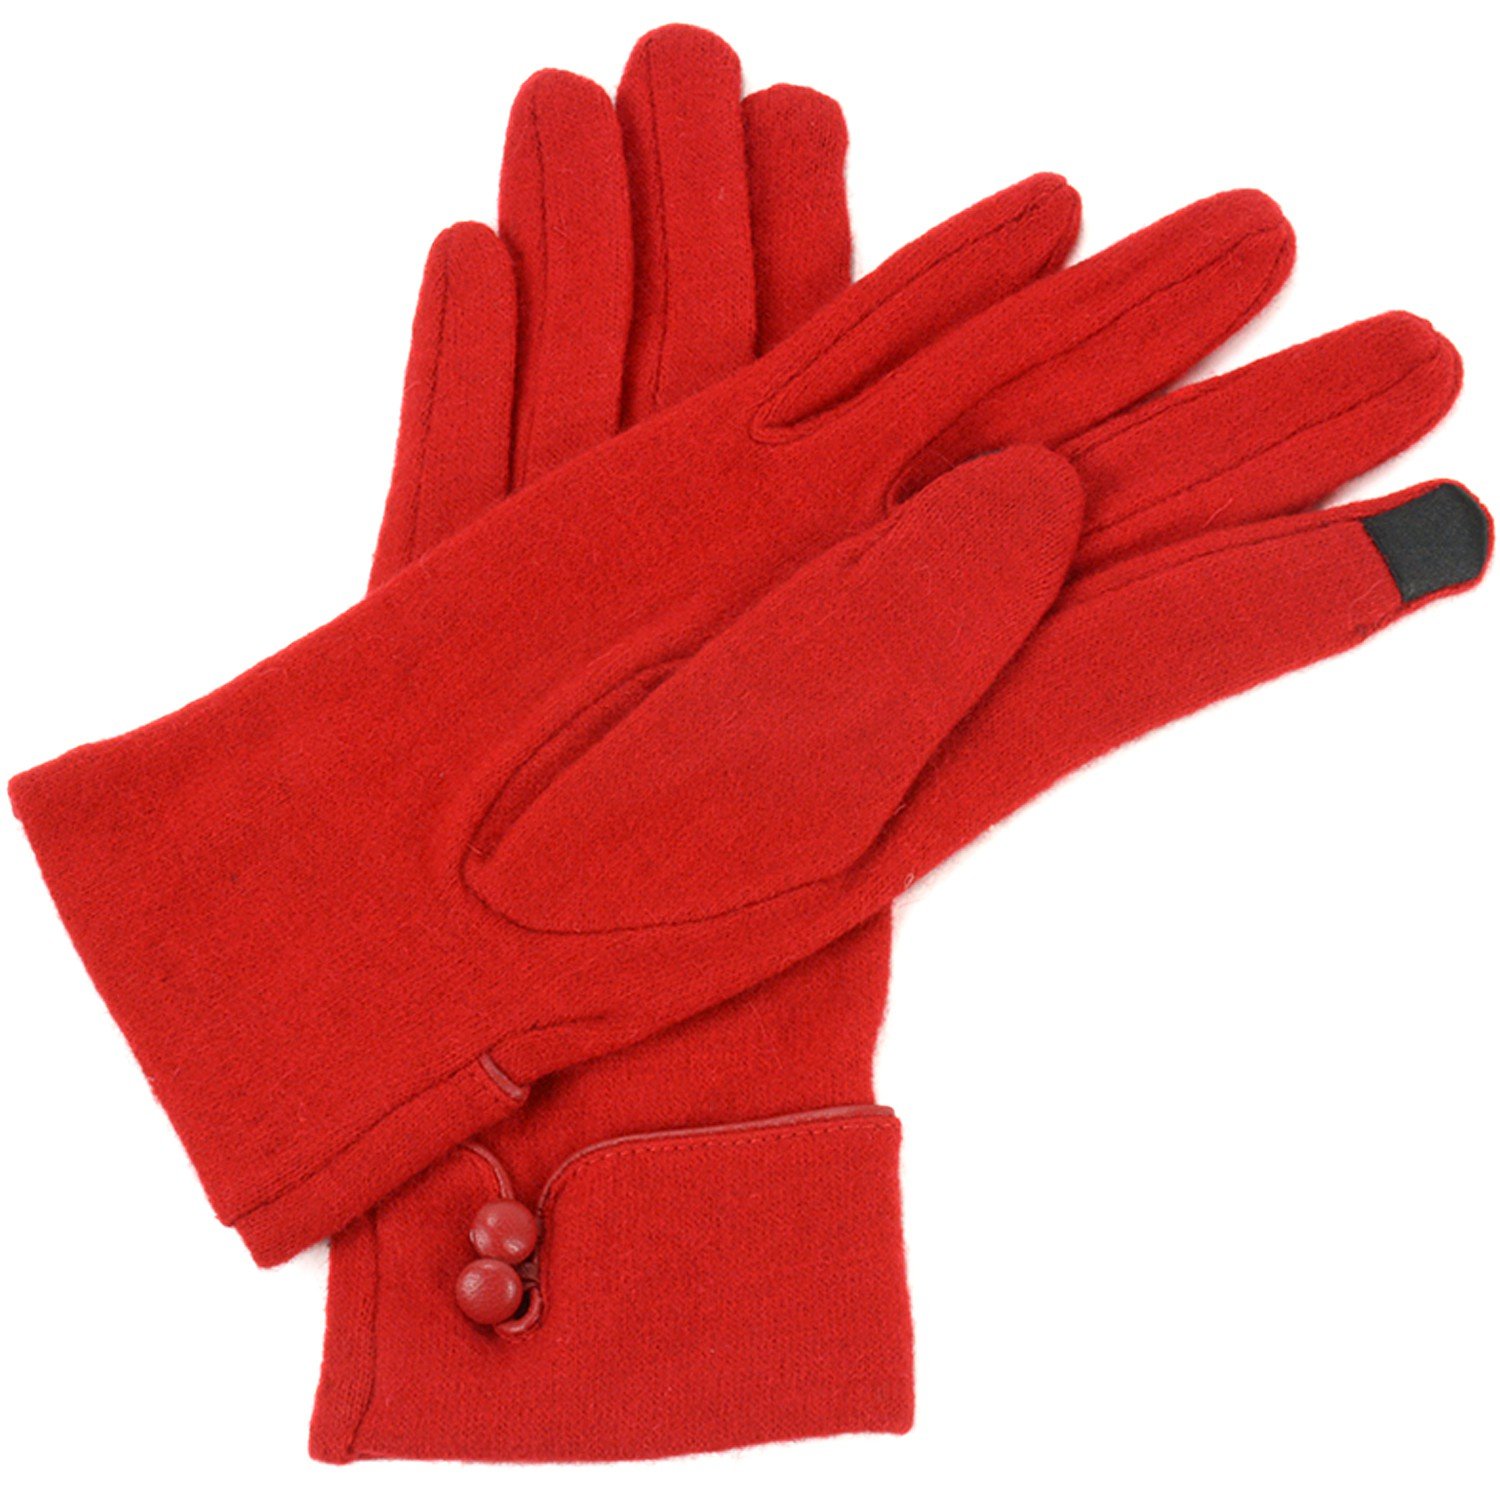 Alpine-Swiss-Womens-Wool-amp-Leather-Trim-Touch-Screen-Texting-Dress-Button-Gloves thumbnail 17